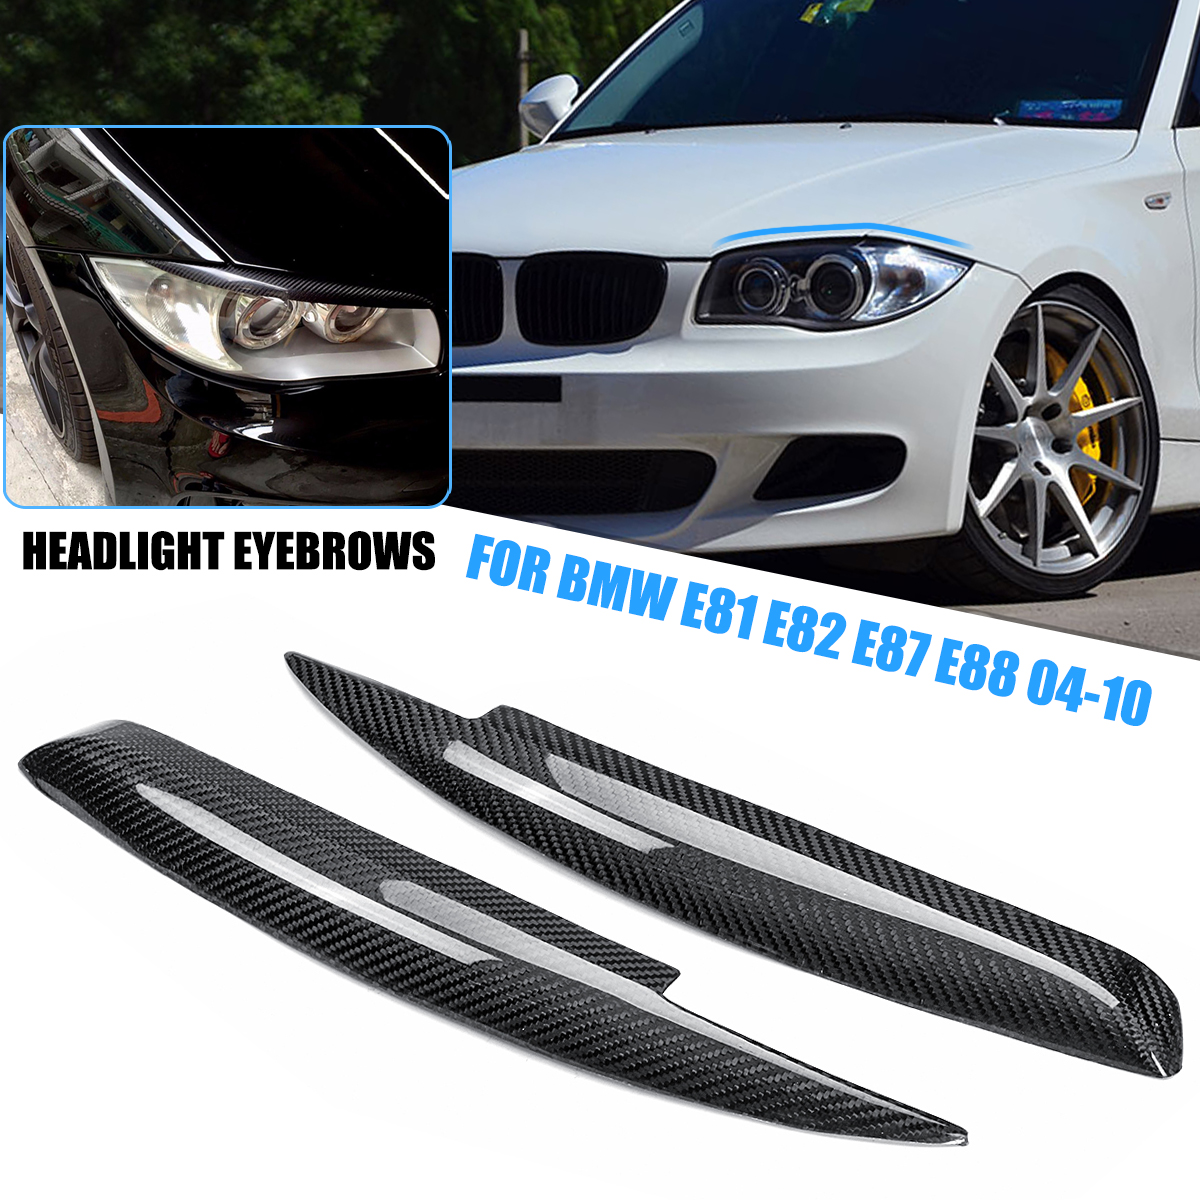 Carbon Fiber Car Headlight Eyebrows Eyelids Cover For BMW E81 E82 E87 E88 2004-2010 for bmw e36 318i 323i 325i 328i m3 carbon fiber headlight eyebrows eyelids 1992 1998